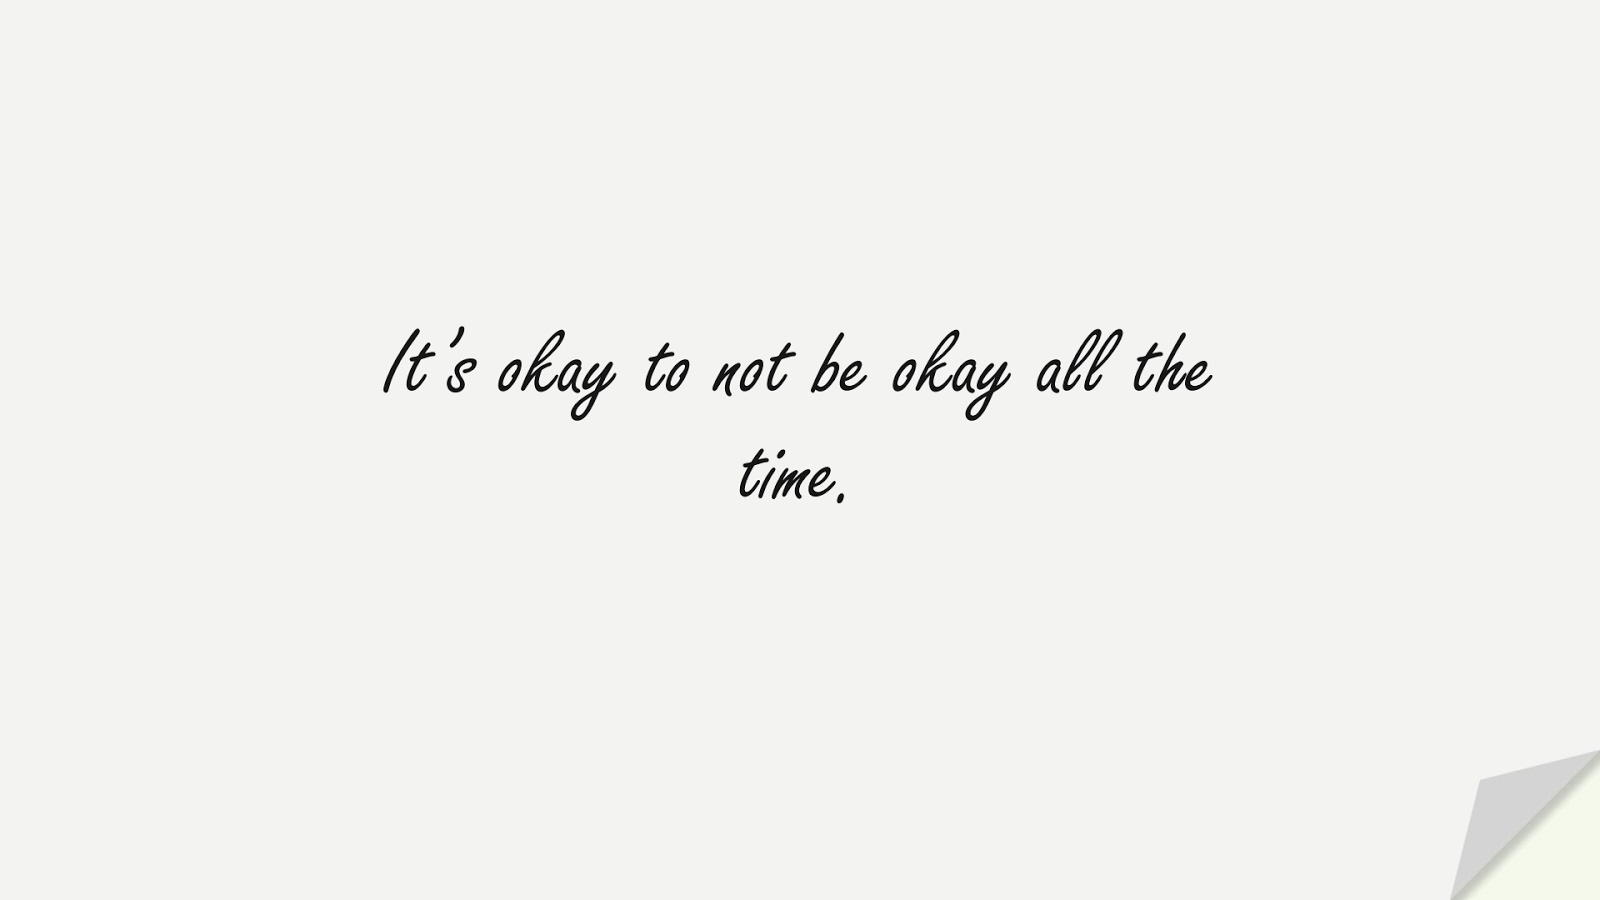 It's okay to not be okay all the time.FALSE